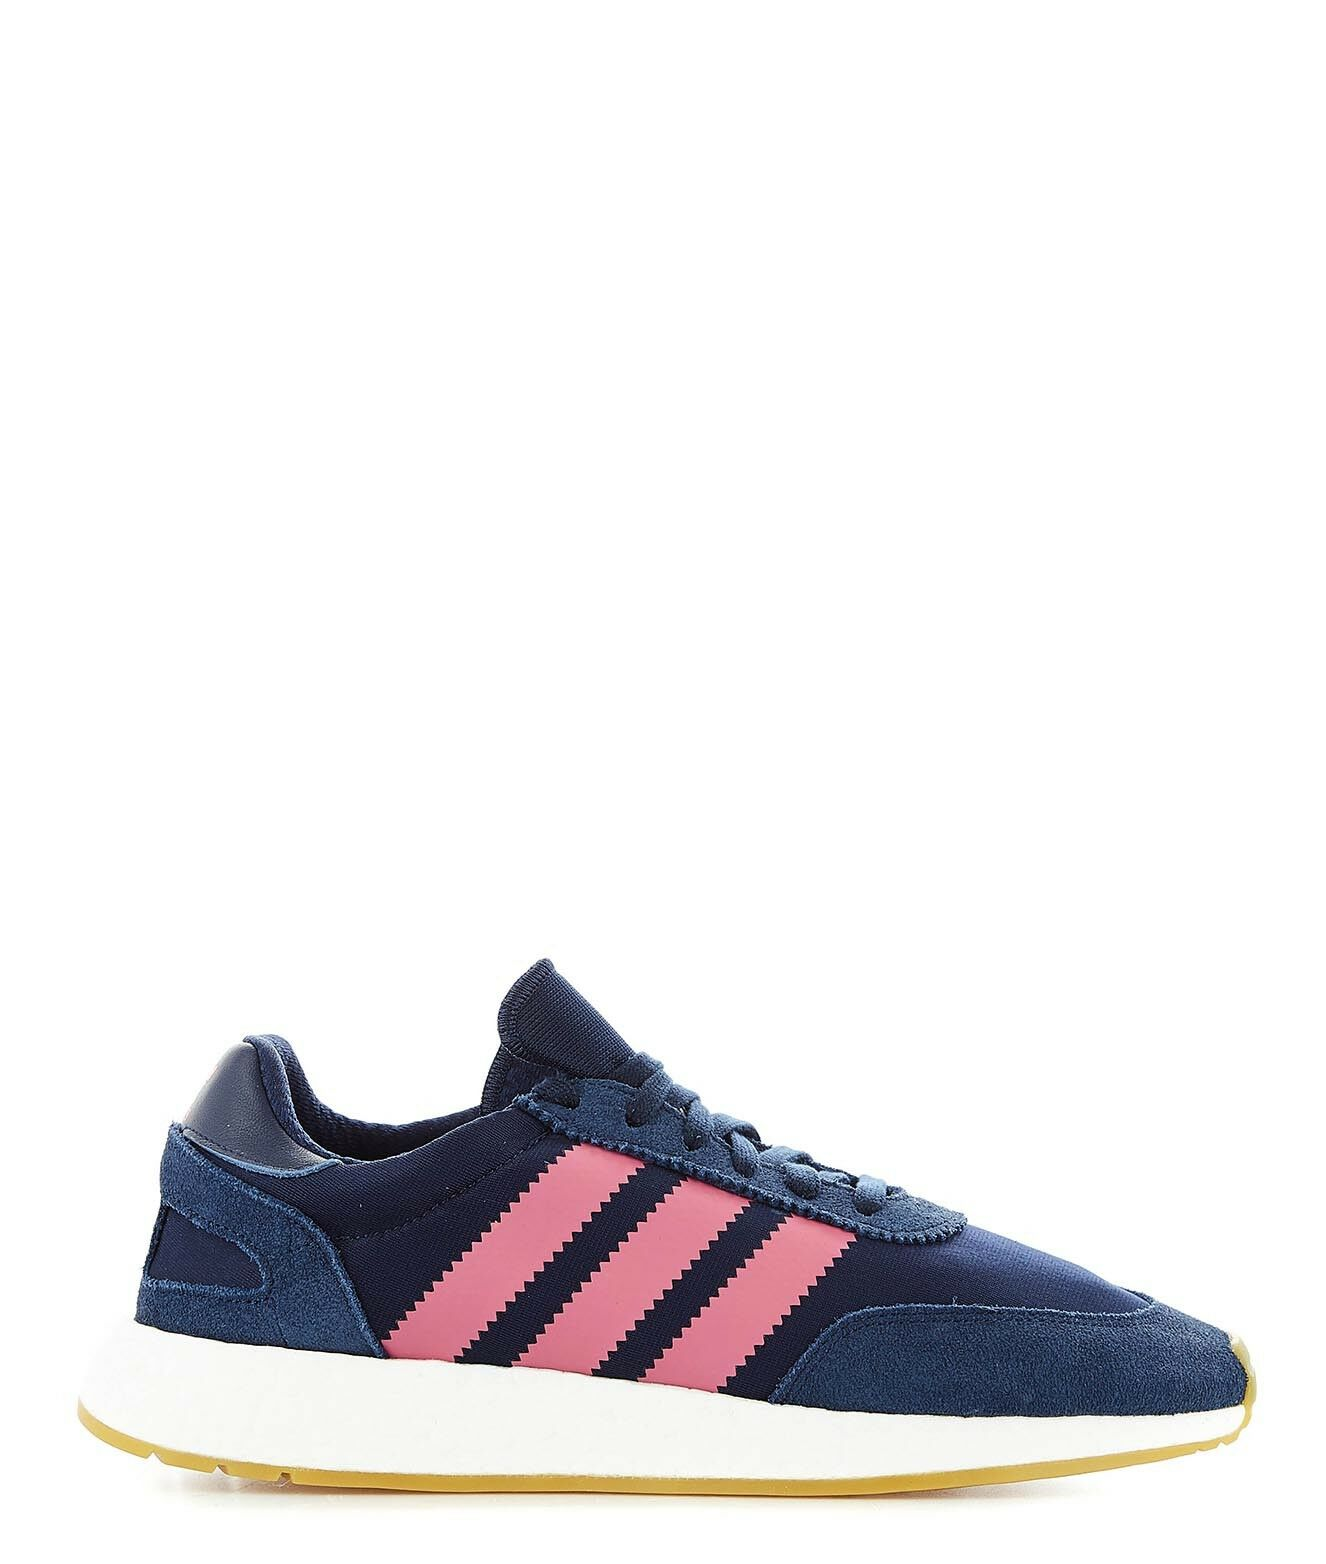 Adidas Men's shoes Sneakers - DB3012   Navy   Spring Summer 19